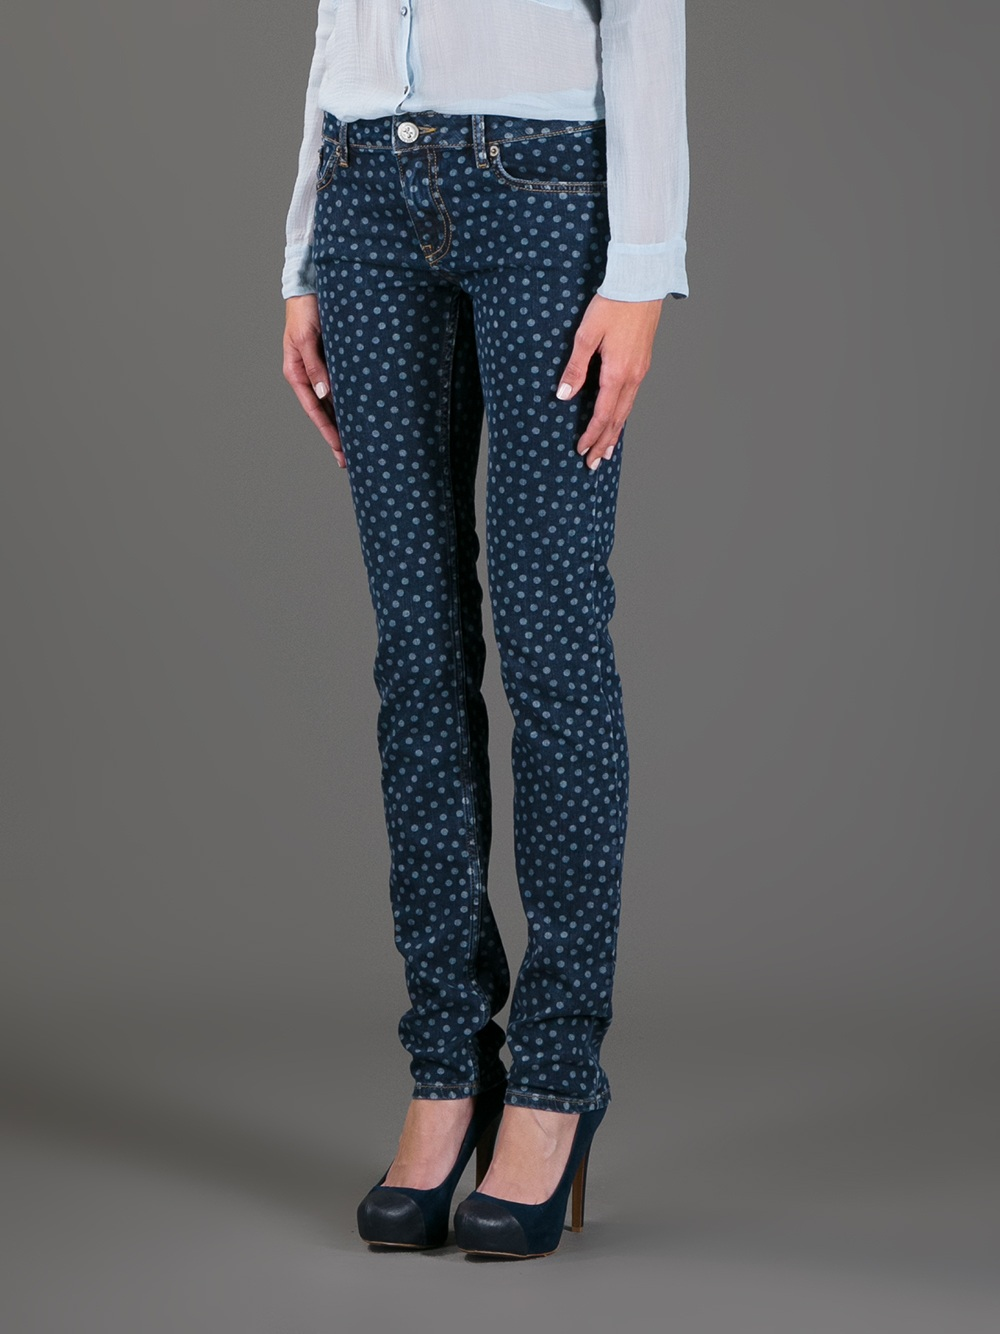 Lyst red valentino polka dot jeans in blue sisterspd